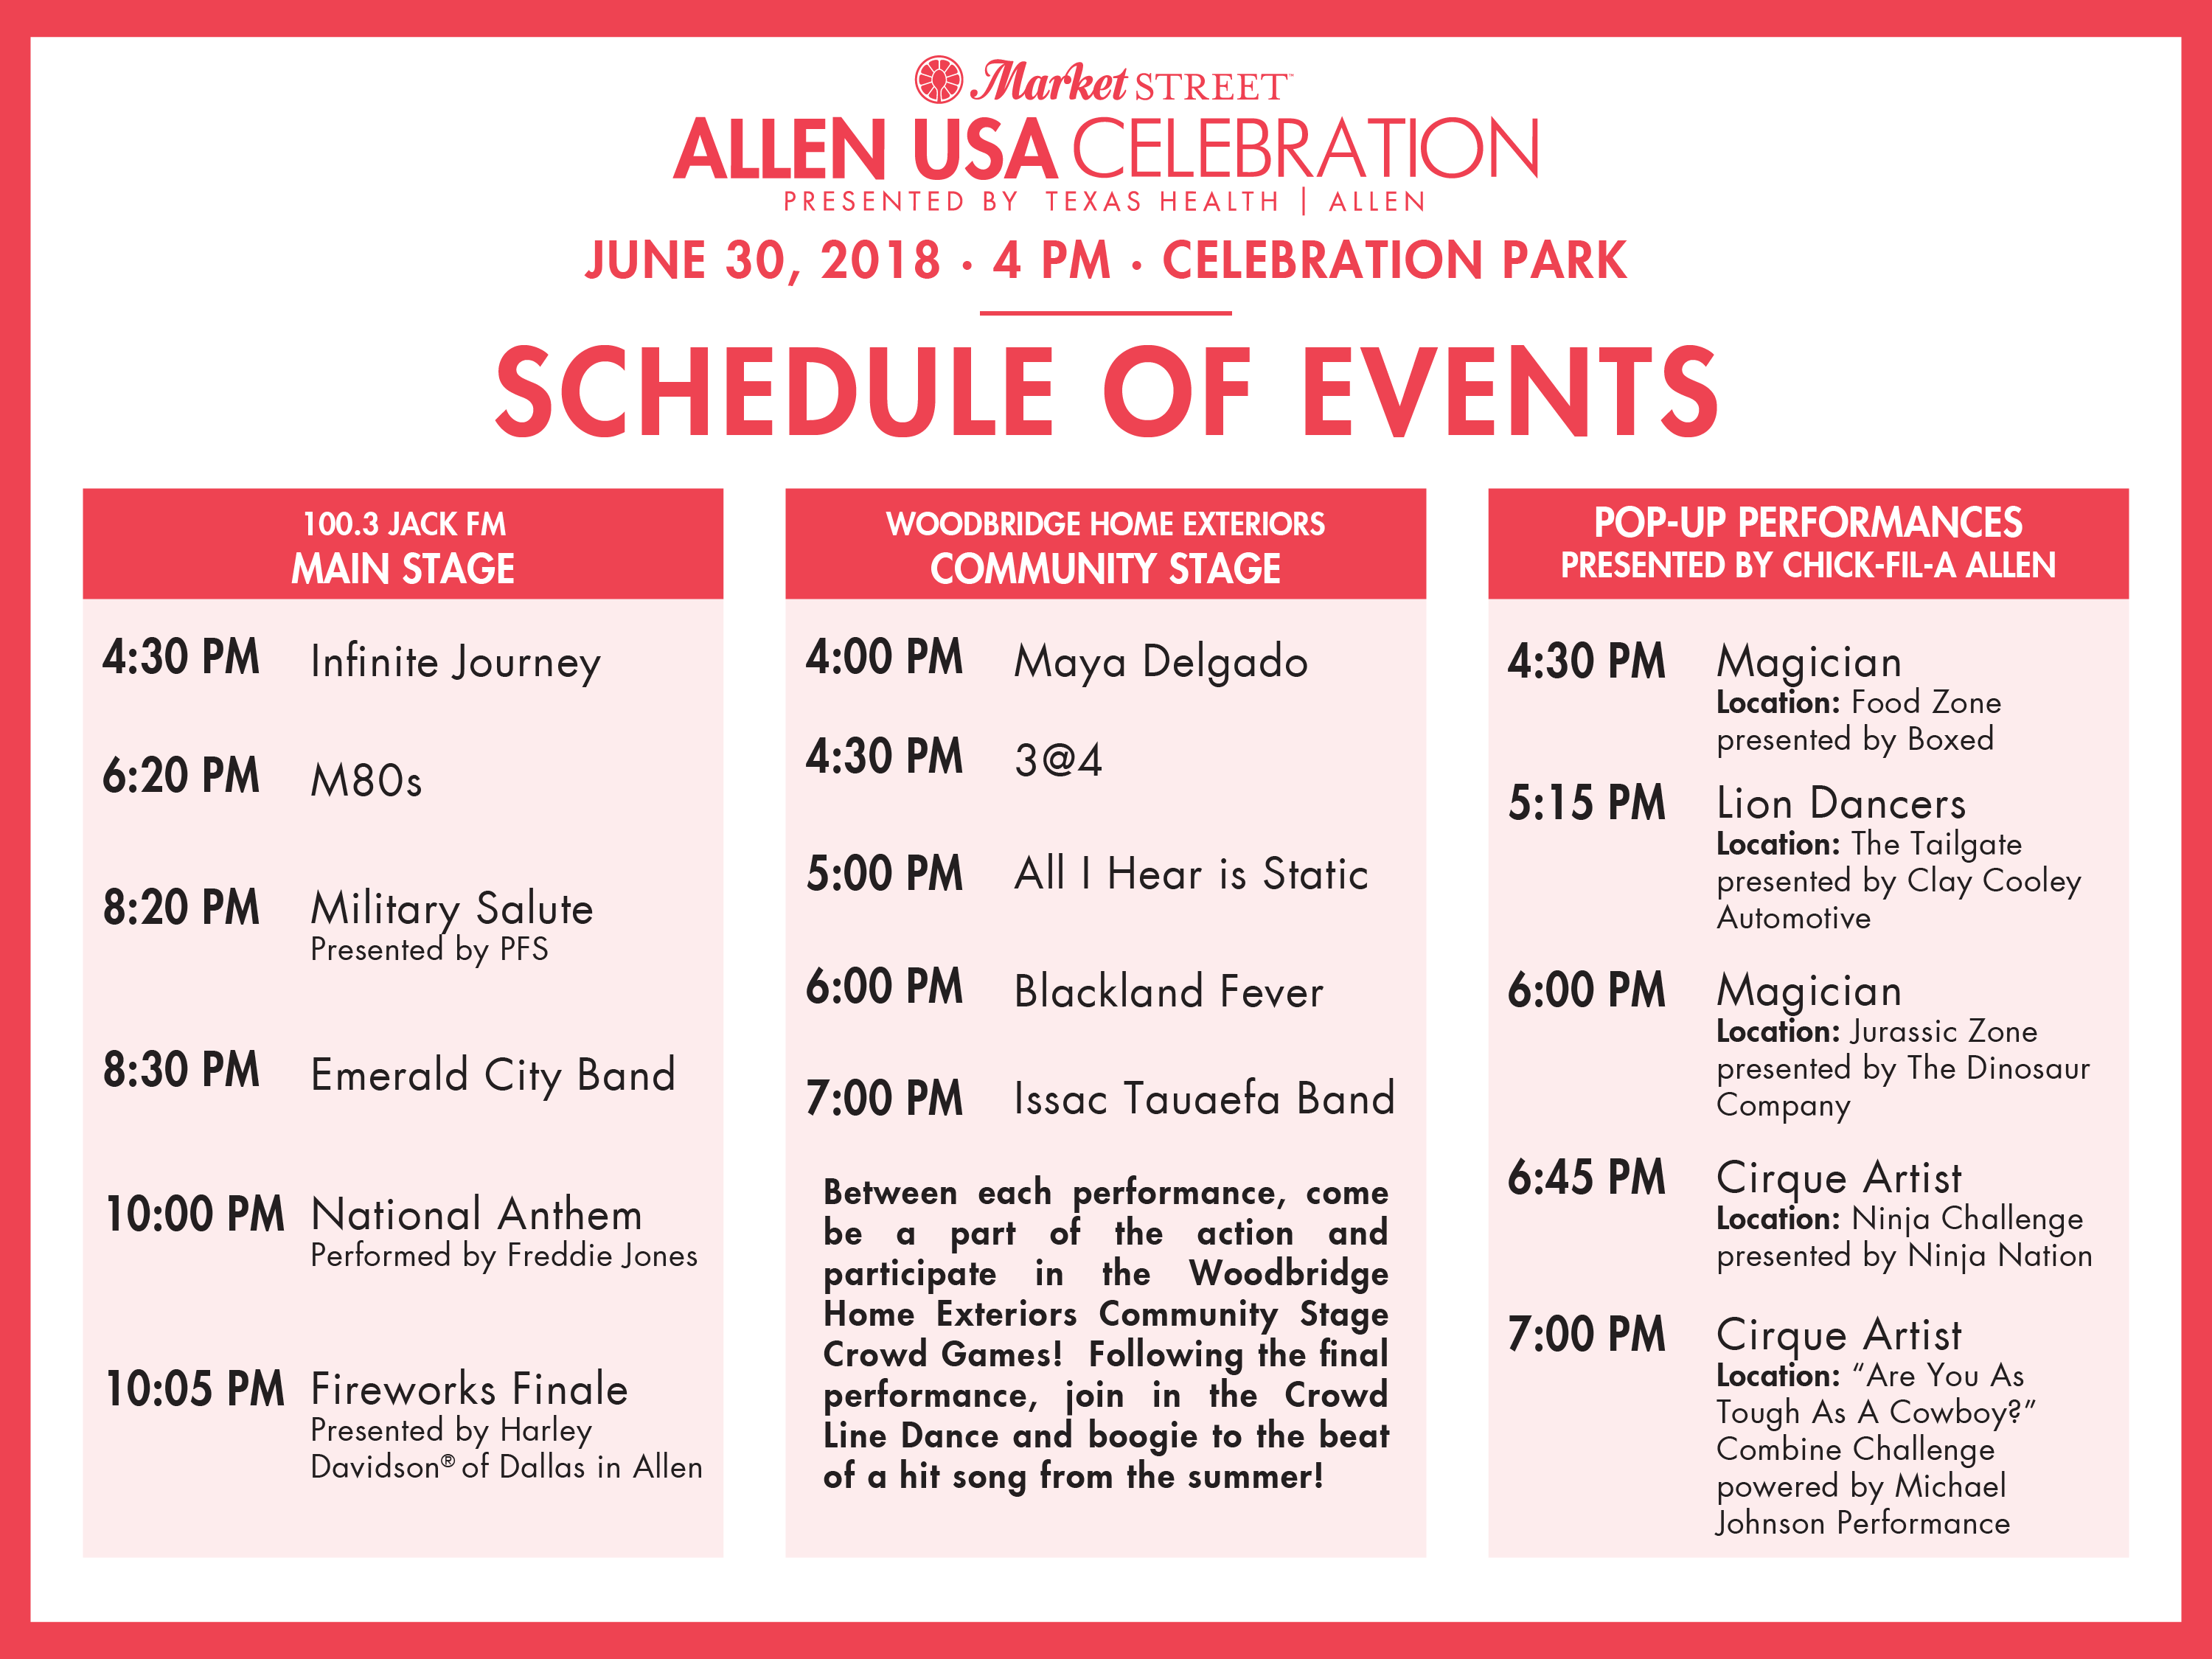 2018 Allen USA Schedule of Events